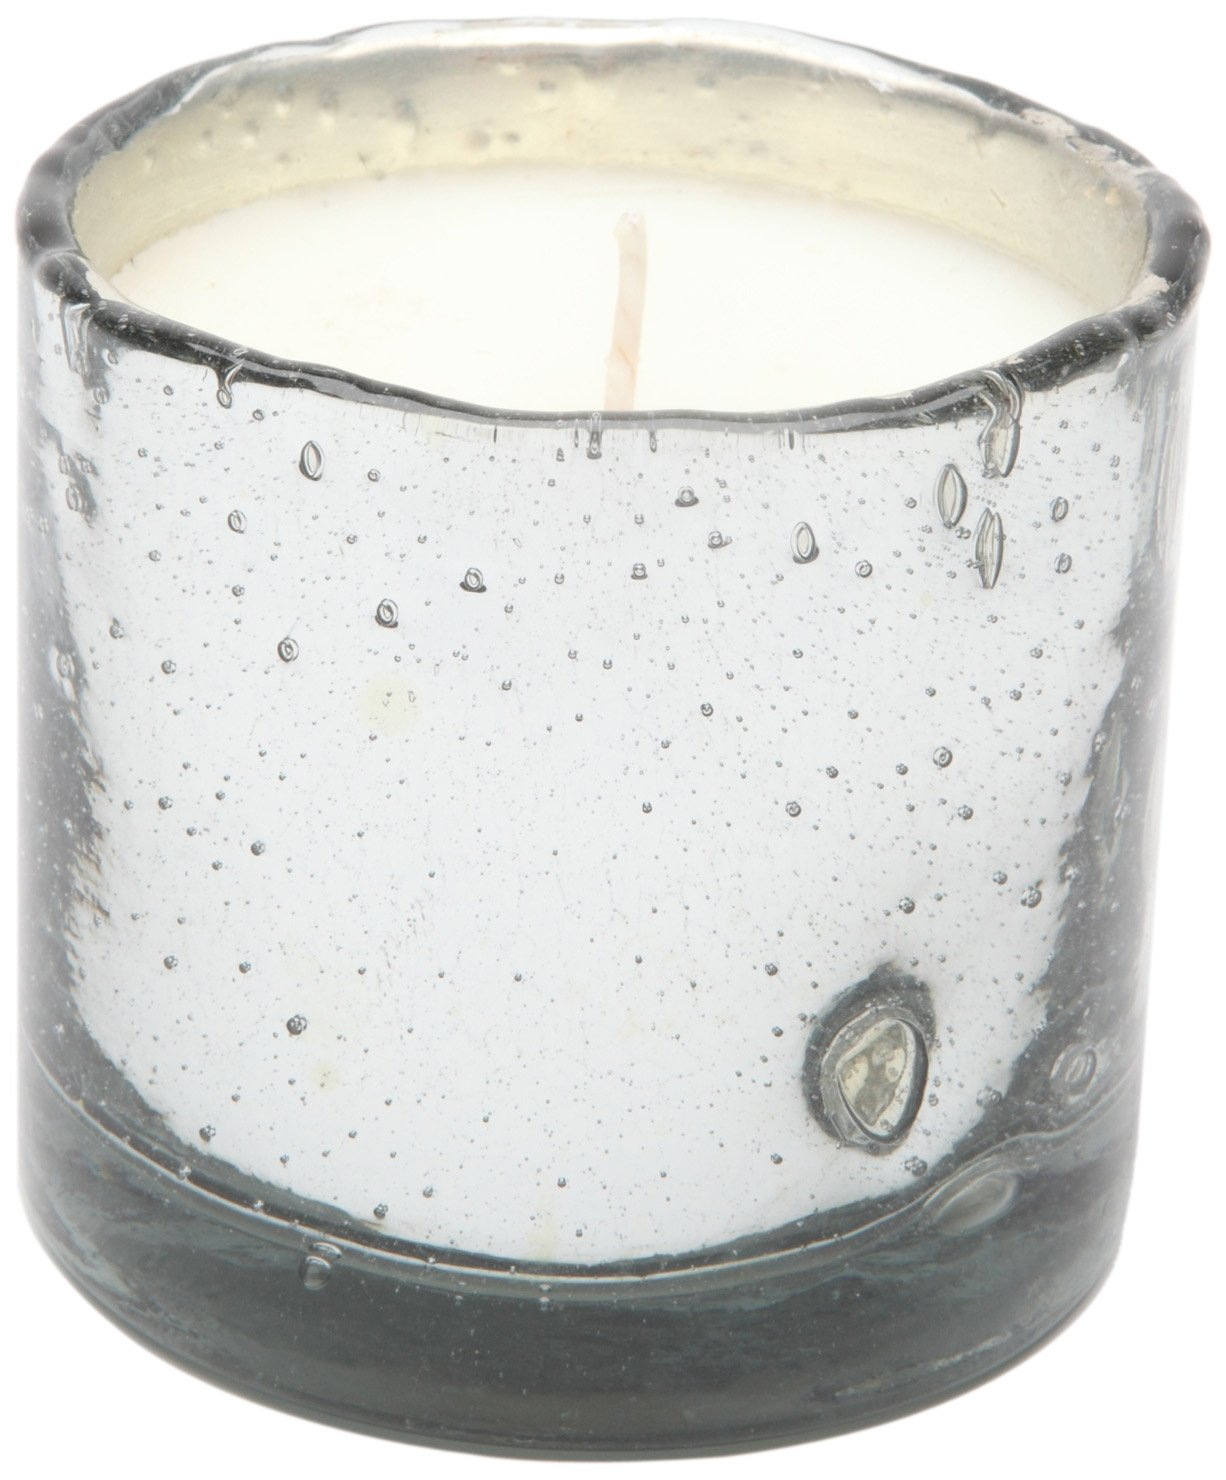 Himalayan Candles Mercury Glass Soy Candle Tumbler, Tobacco Bark, 13-Ounce